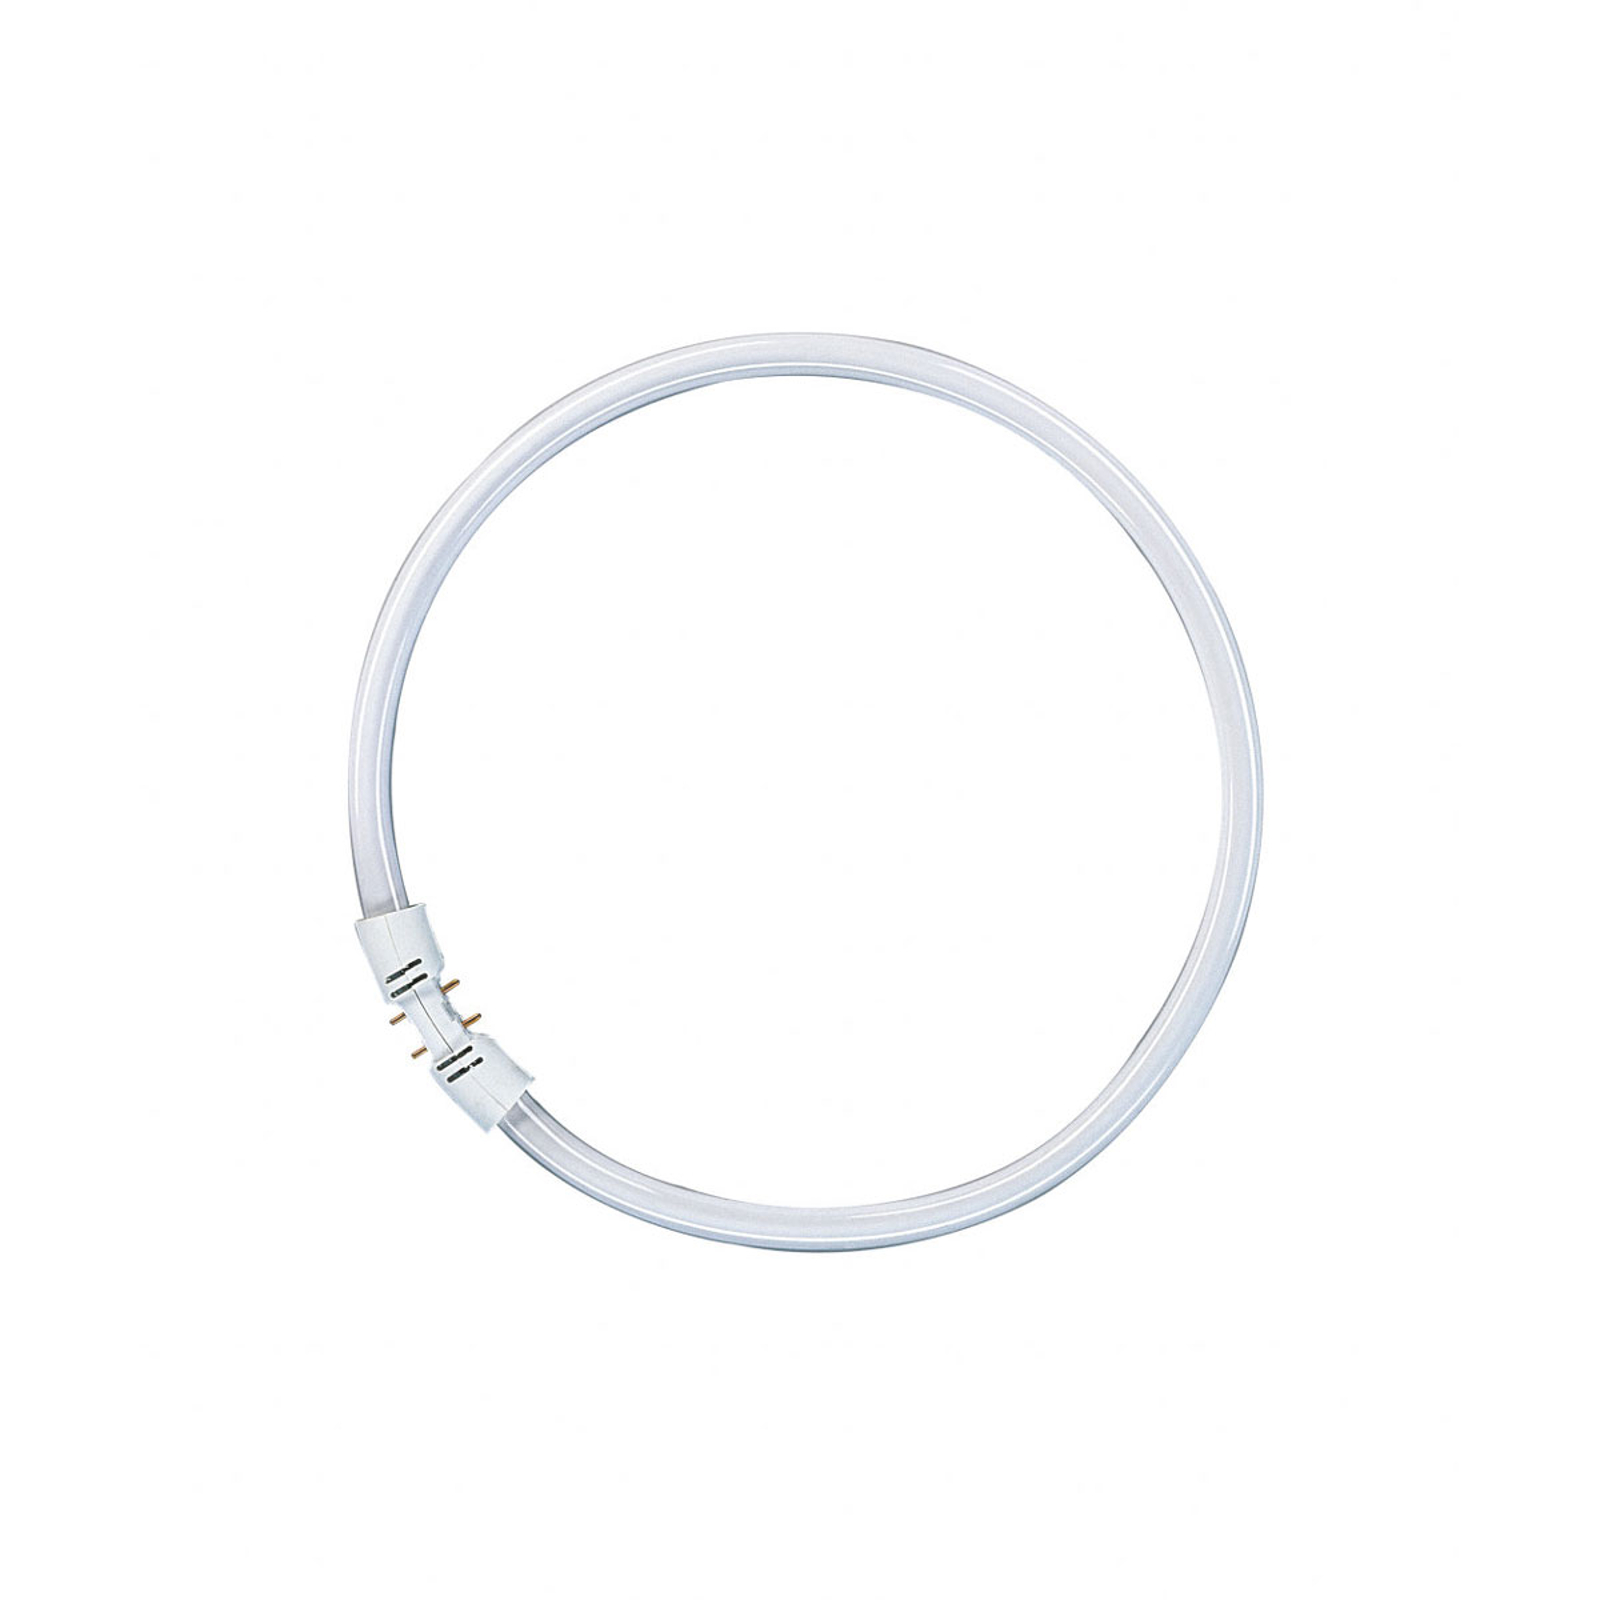 2Gx13 LUMILUX T5 Ring-Leuchtstofflampe 40W 827